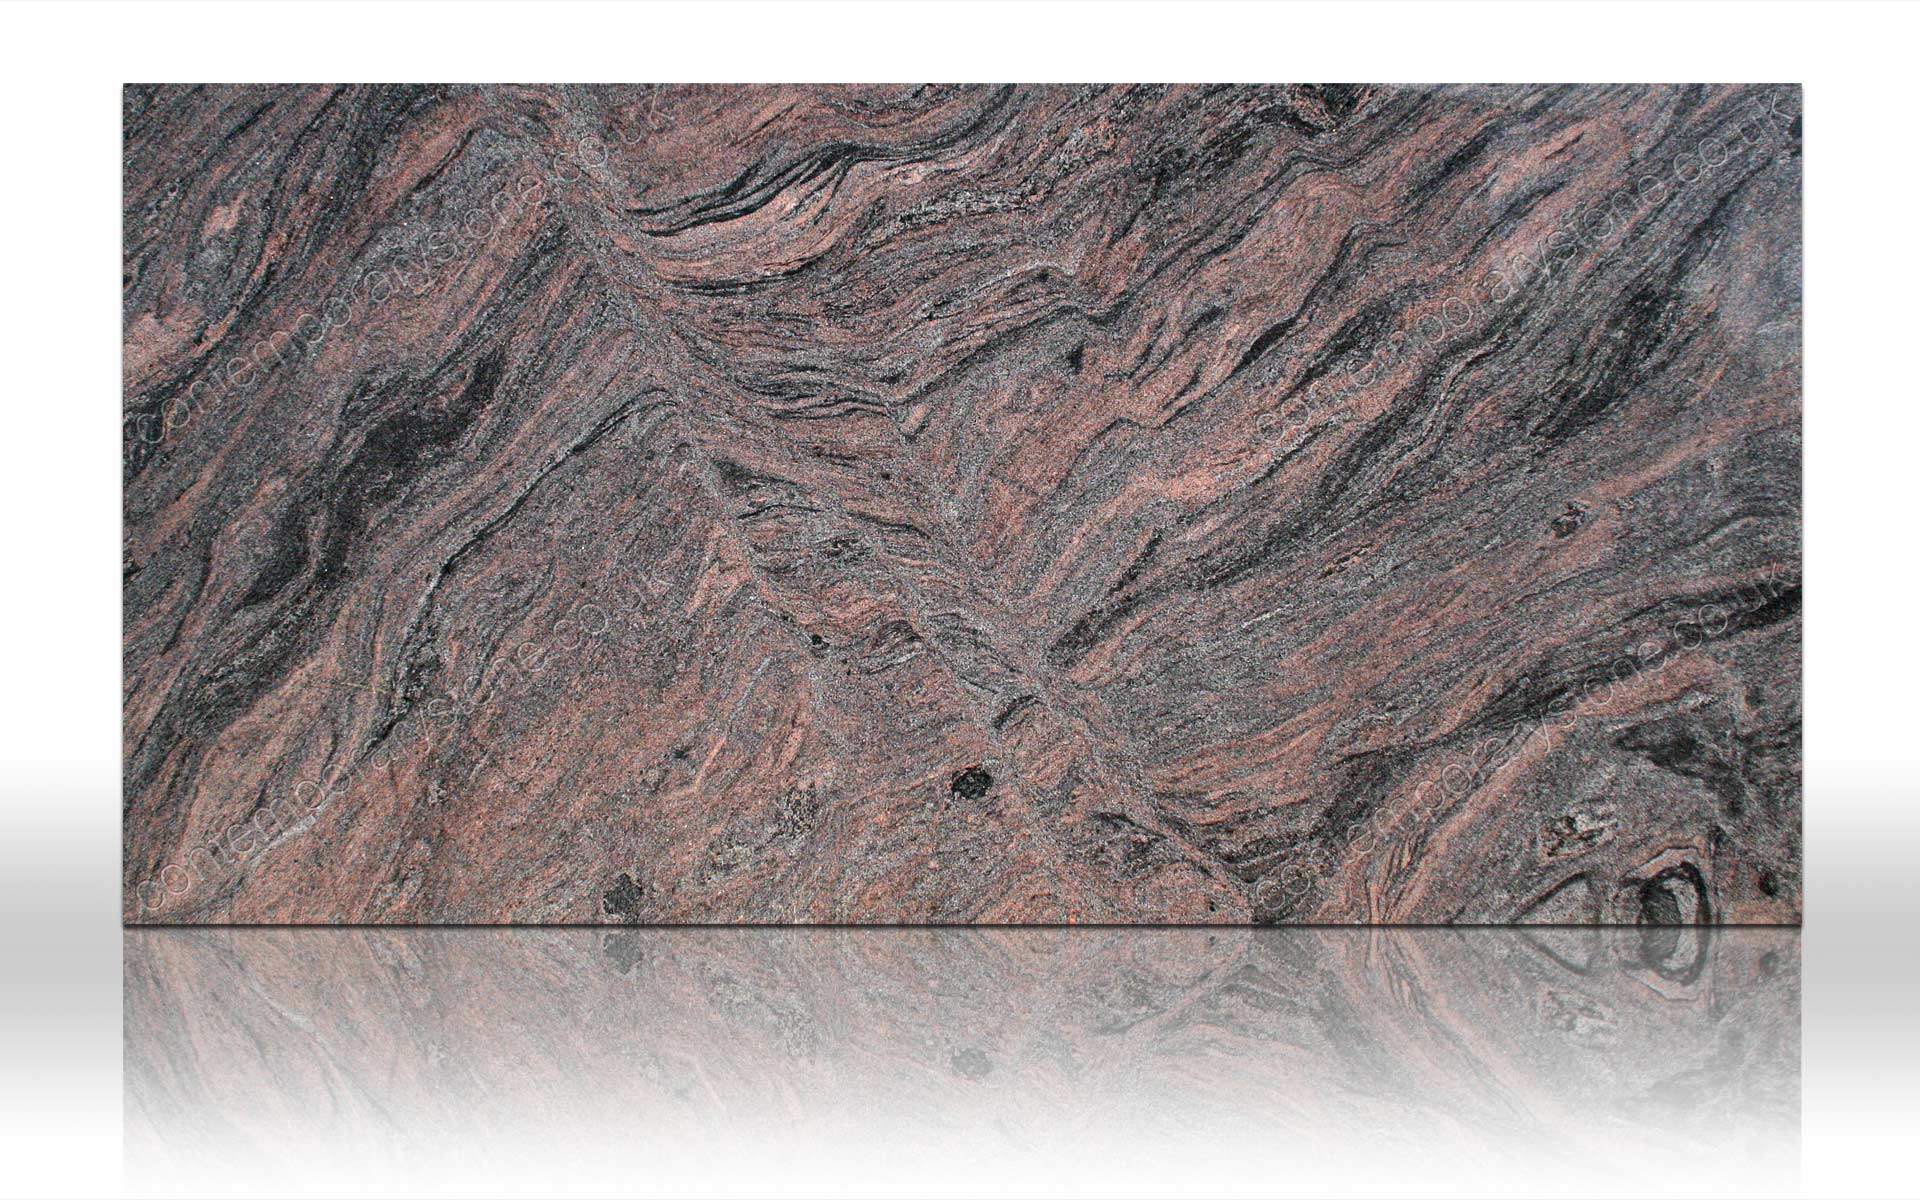 paradiso bash granite slab